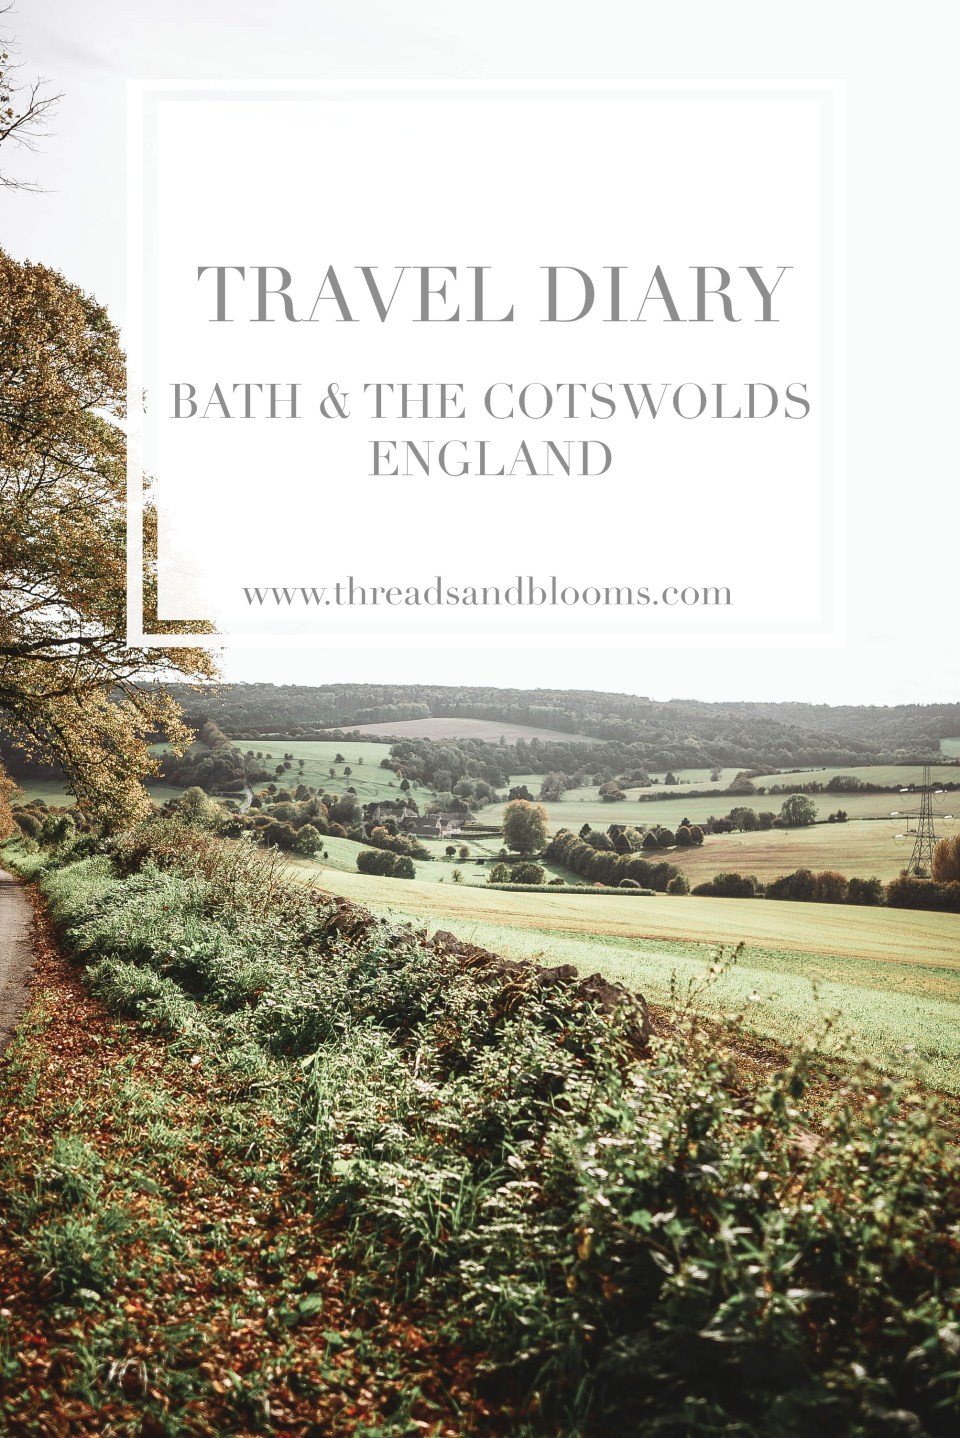 The Cotswolds Travel Diary